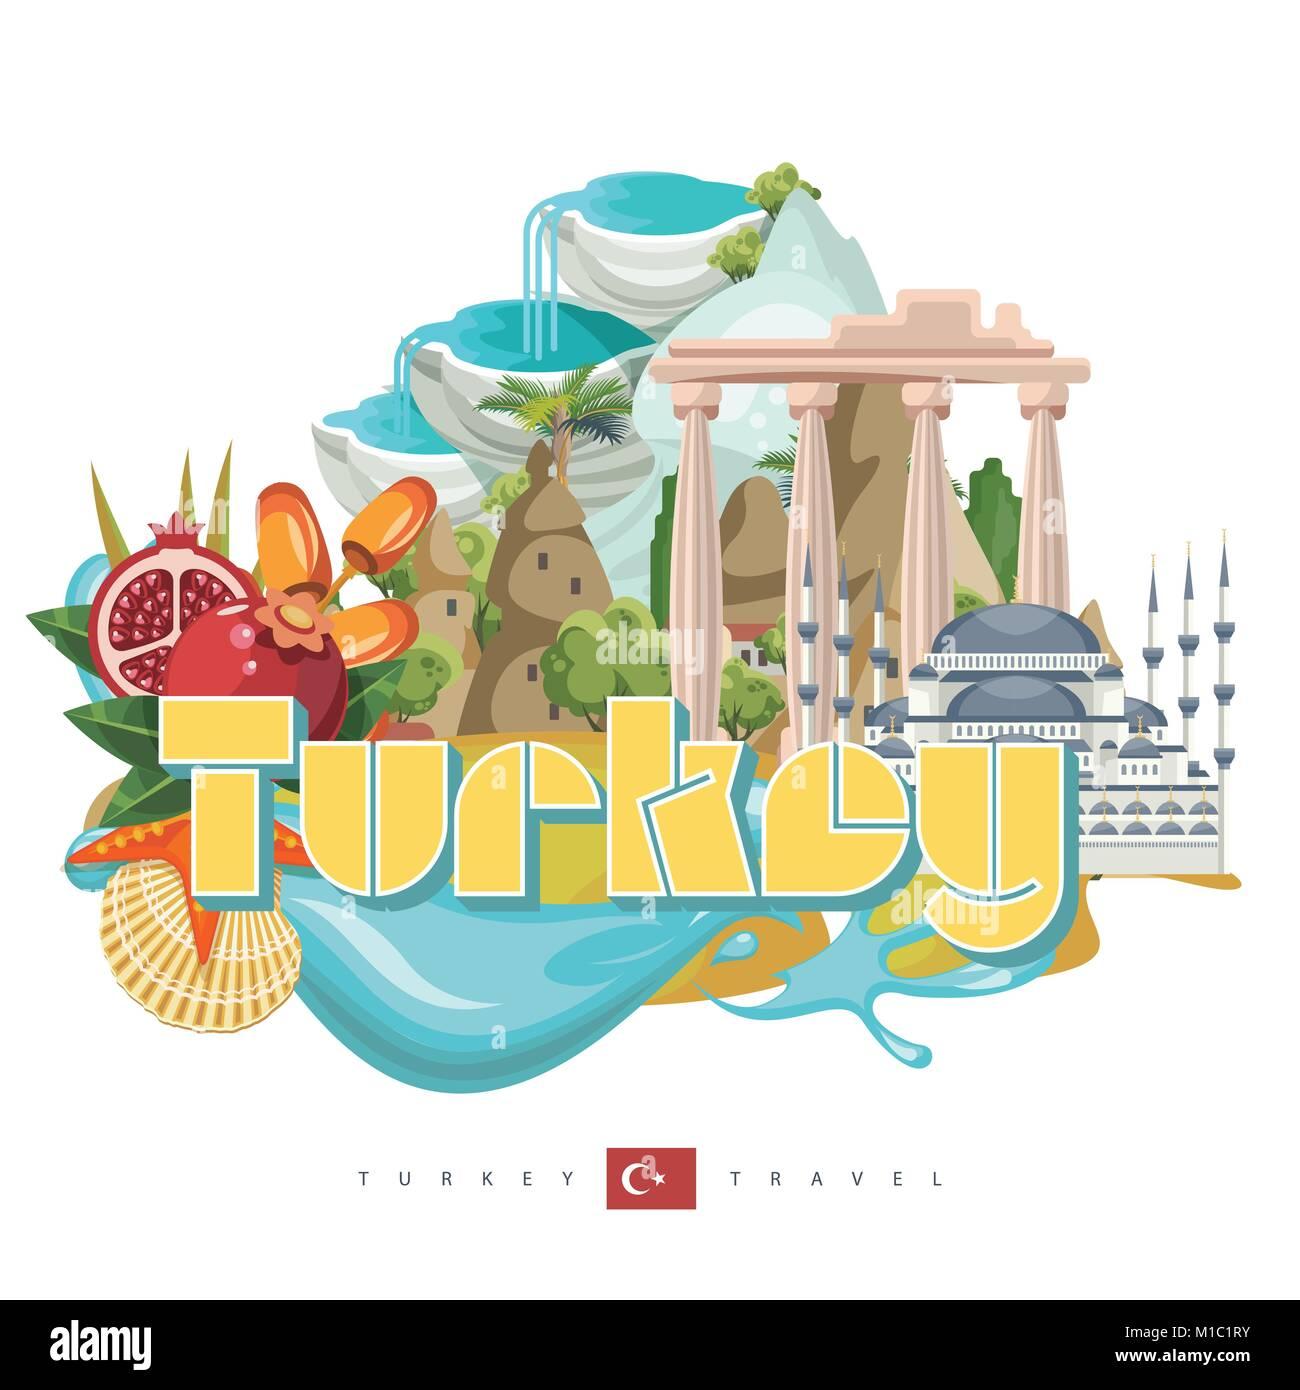 Turkey vector vacations illustration with turkish landmarks. Travel agency poster. - Stock Image